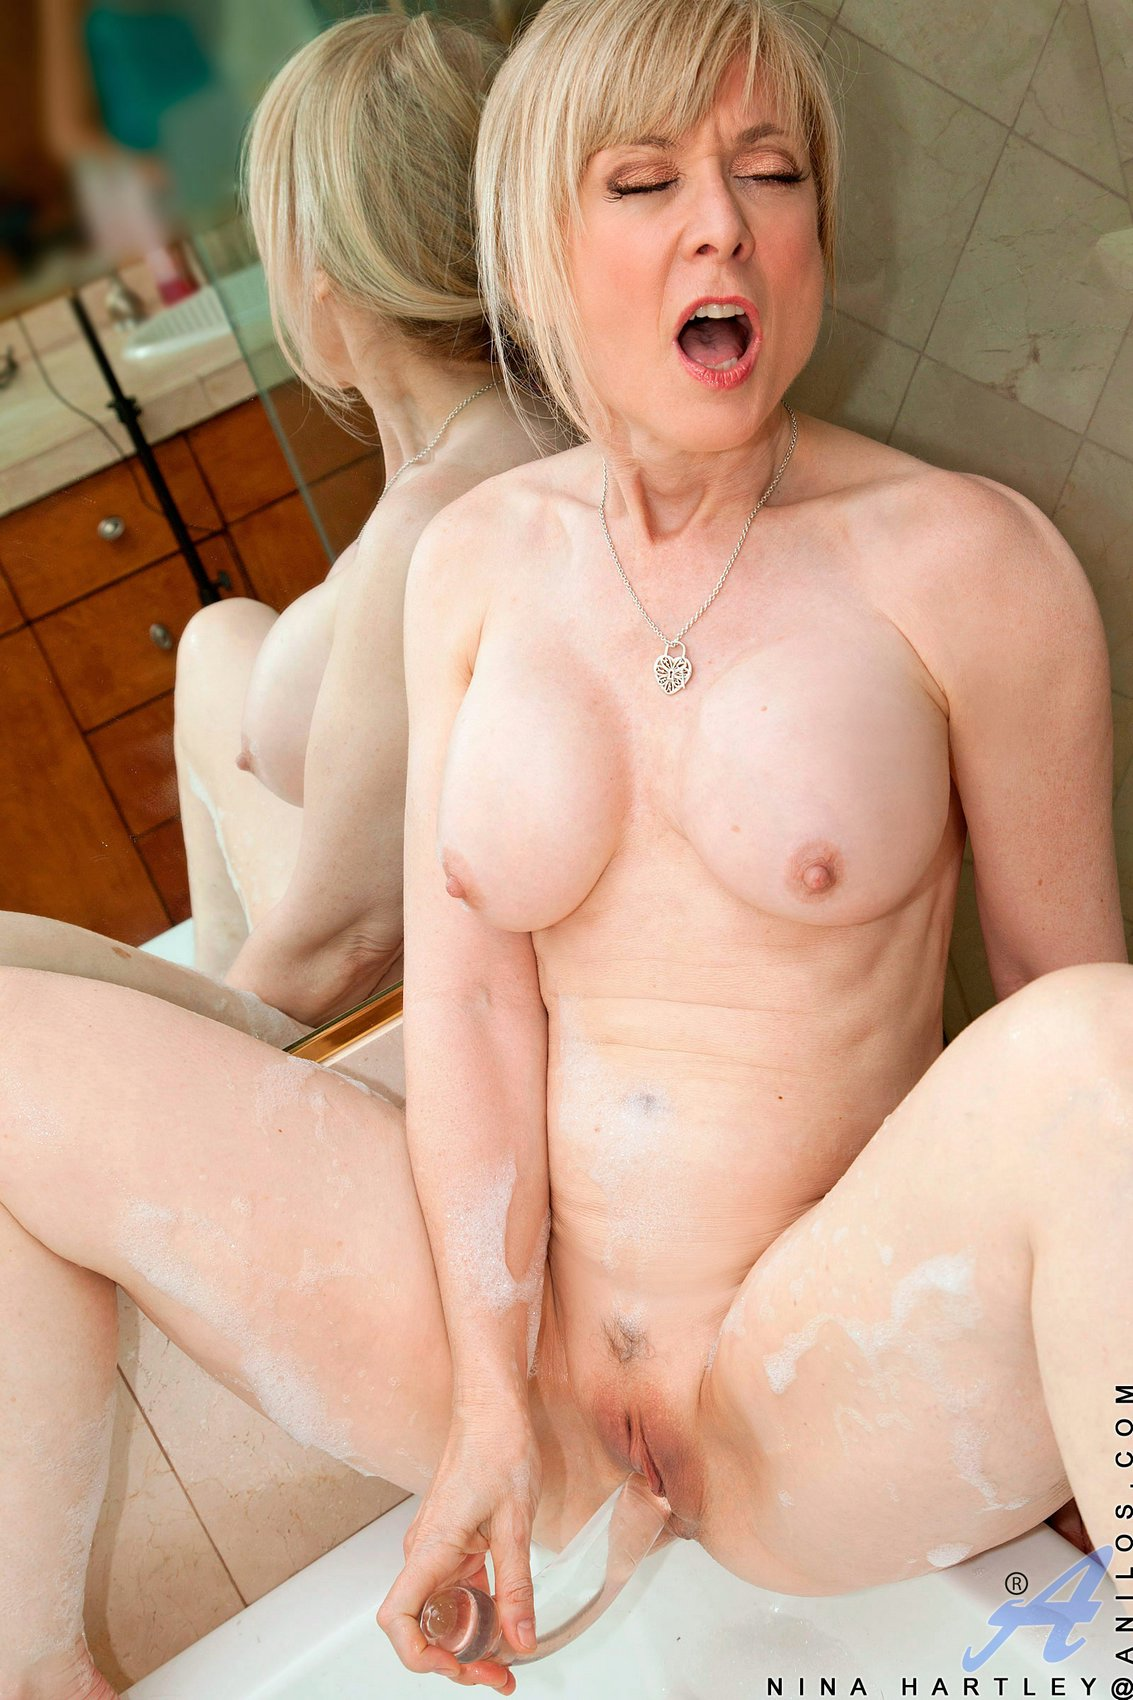 Like Naked nina hartley assured